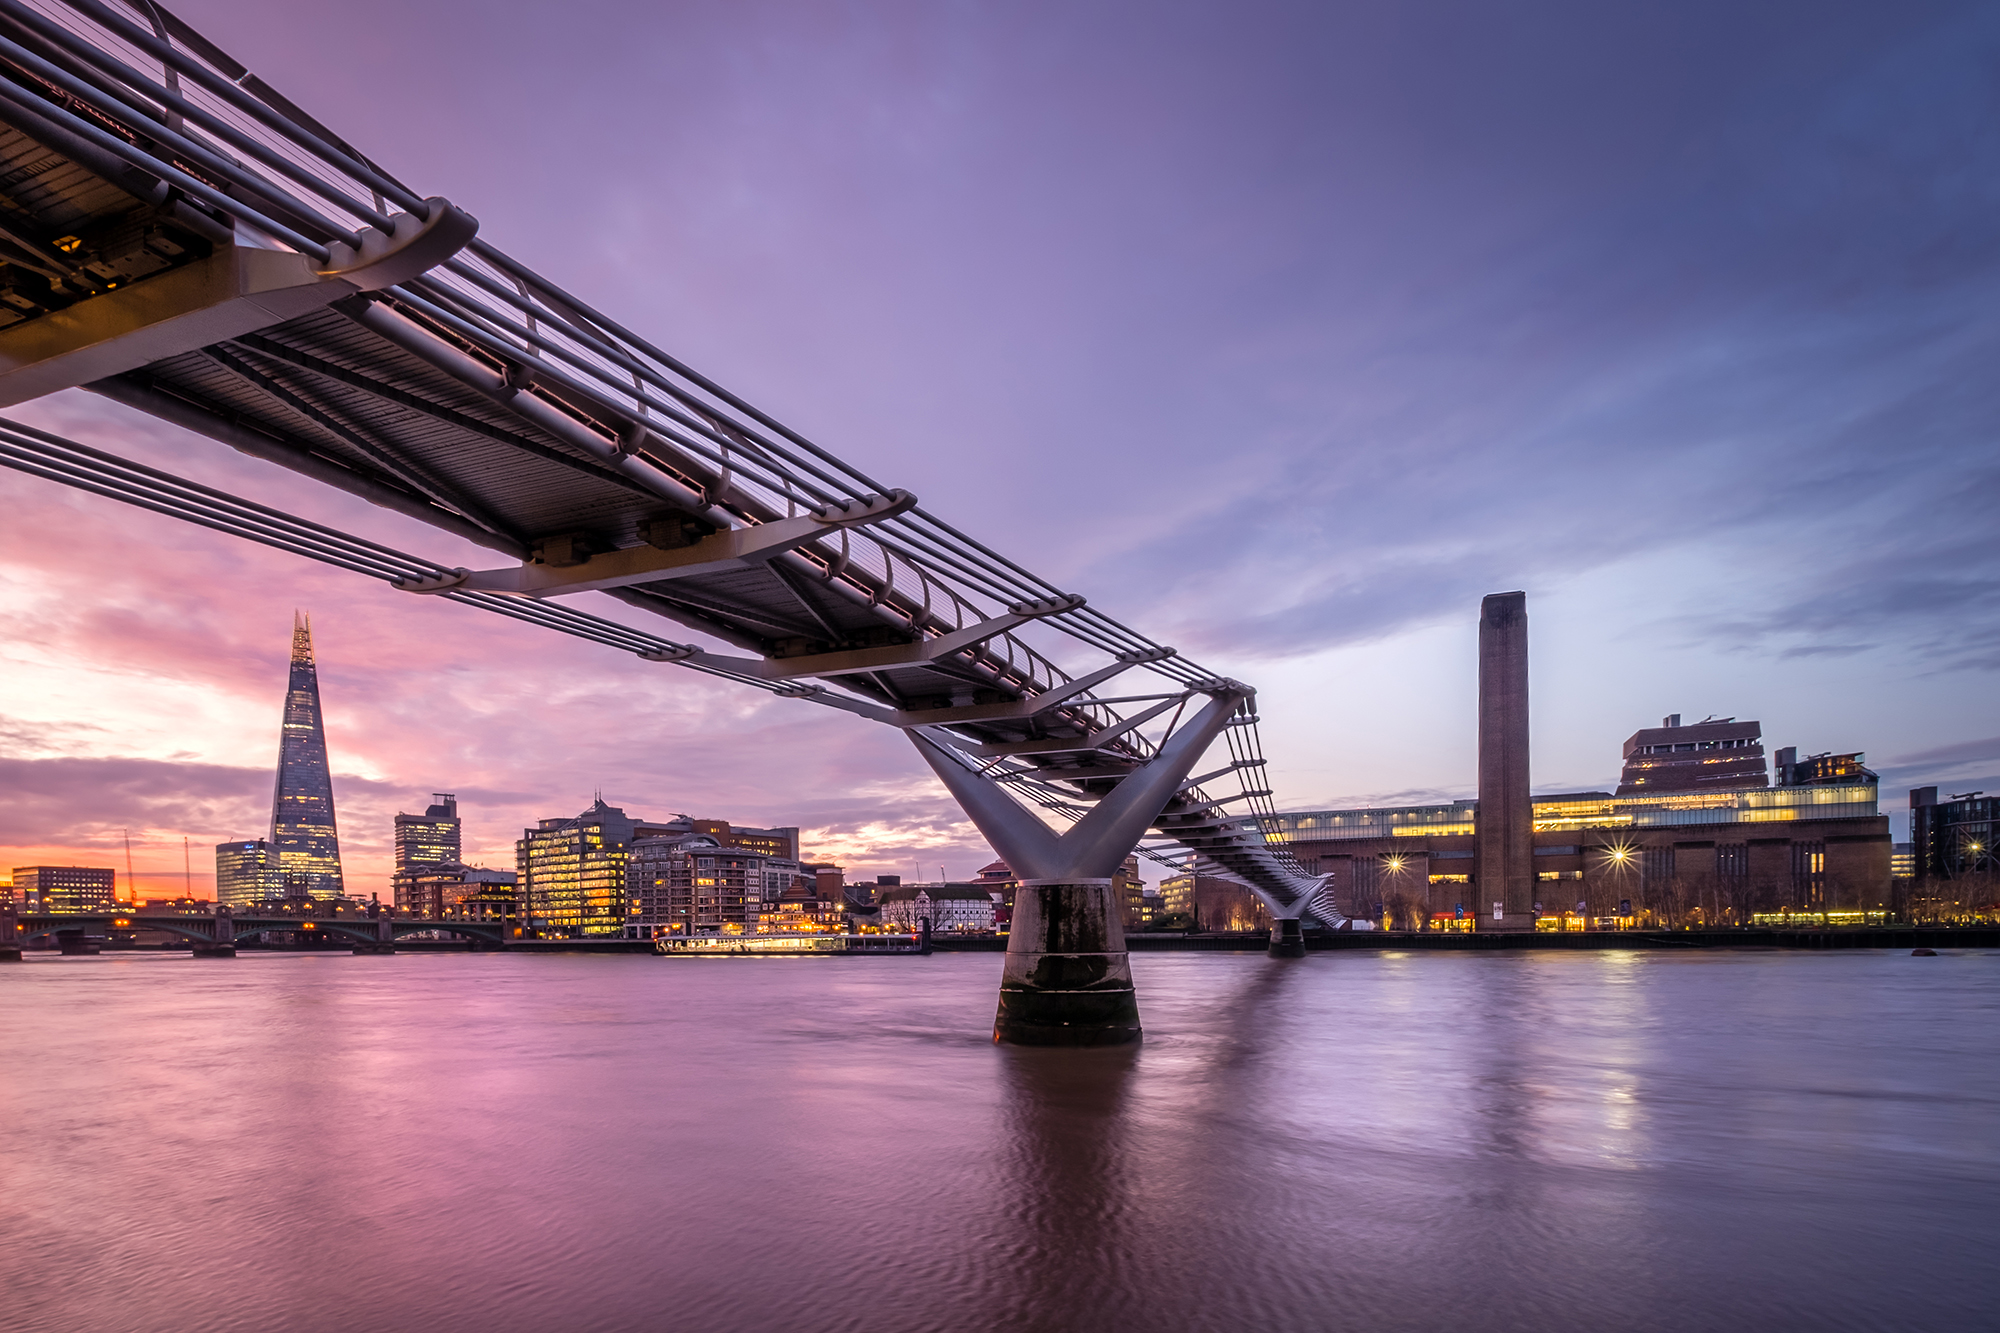 Cityscape photo of the Millennium Bridge, Tate Modern and The Shard, London by Trevor Sherwin